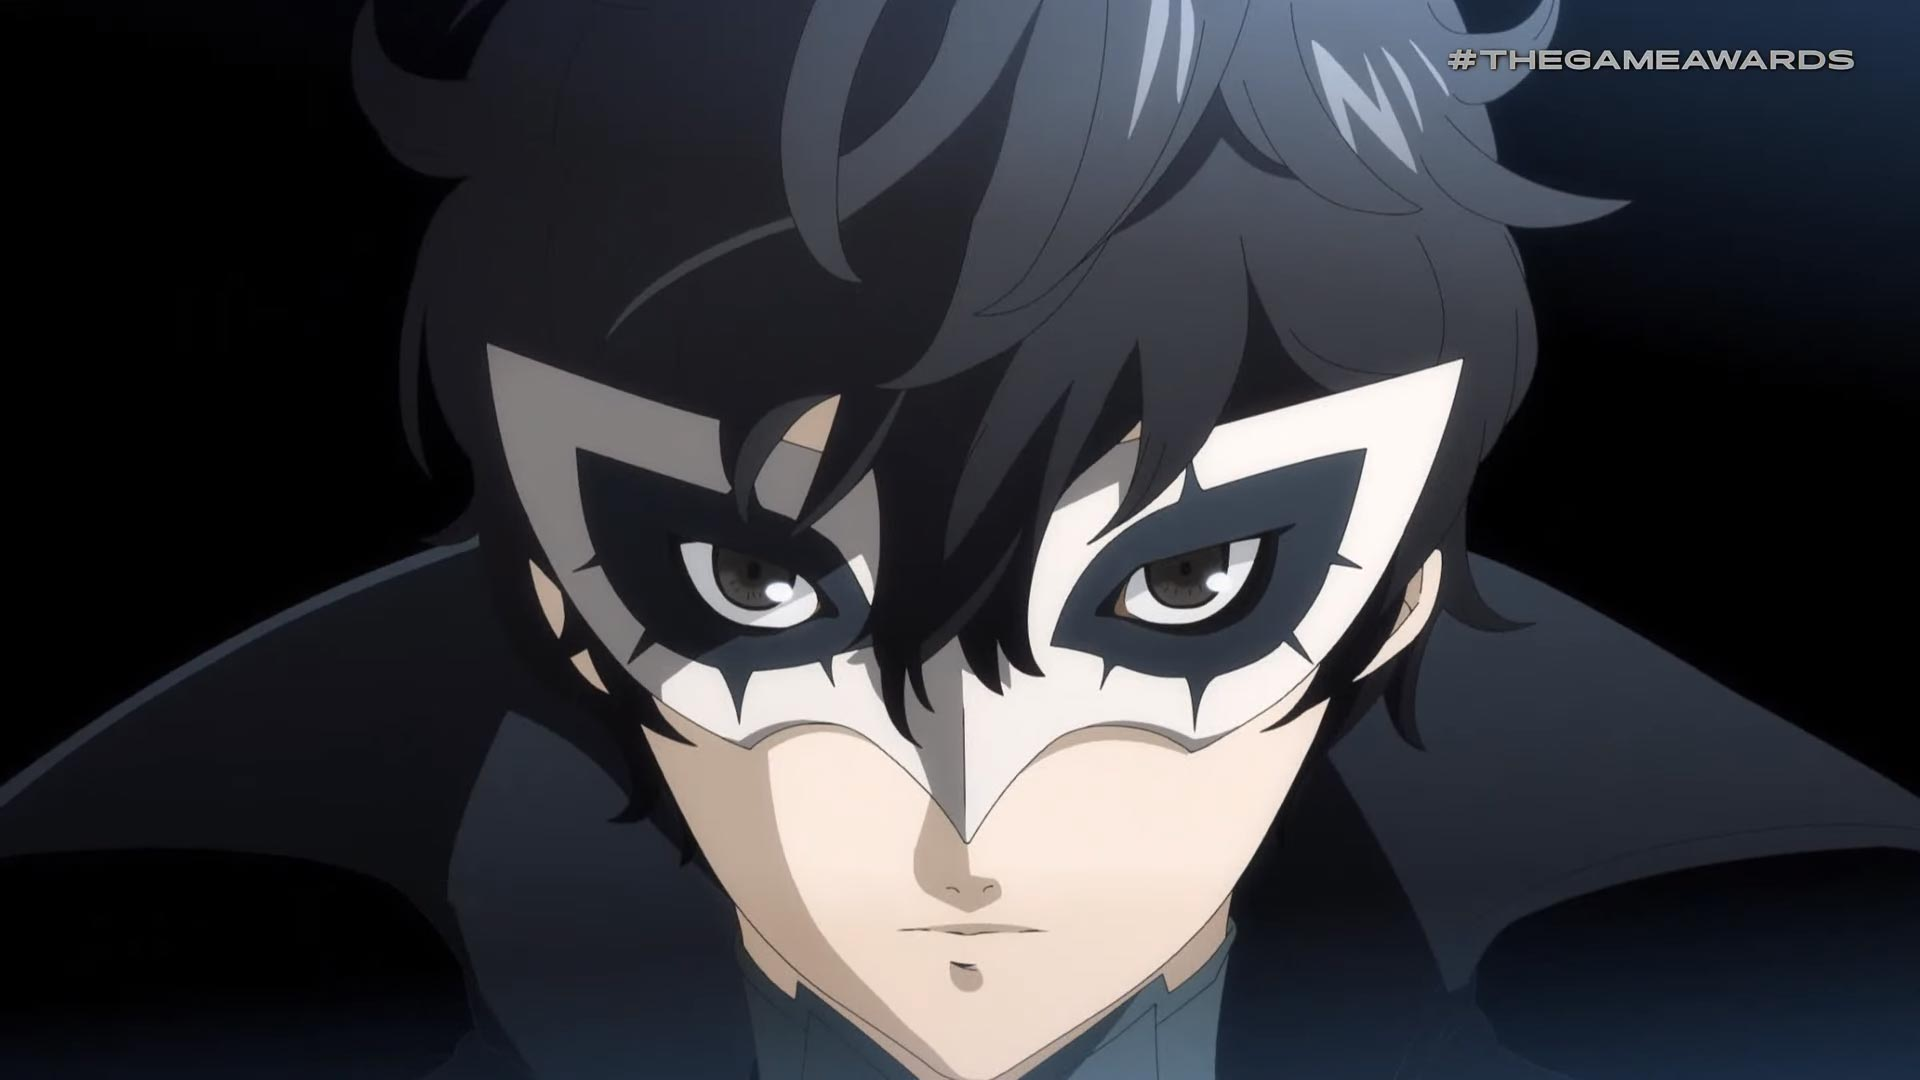 Joker from Persona 5 announced for Super Smash Bros. Ultimate 5 out of 6 image gallery